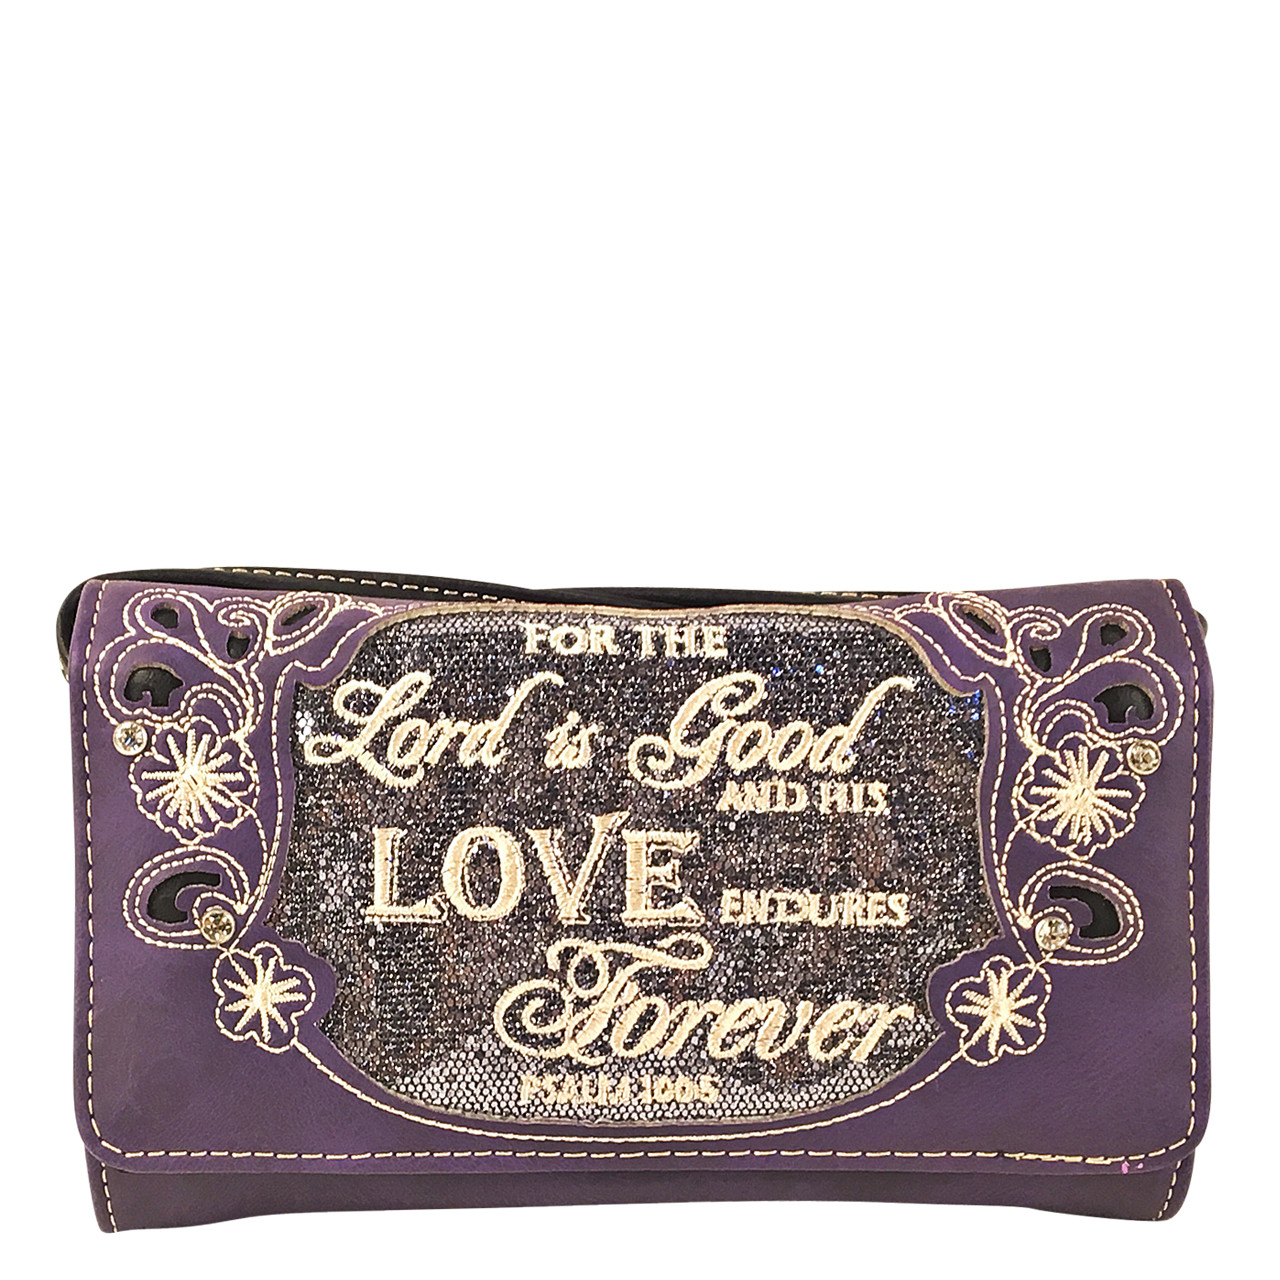 PURPLE BIBLE LOVE QUOTE RHINESTONE STUDDED LOOK CLUTCH TRIFOLD WALLET